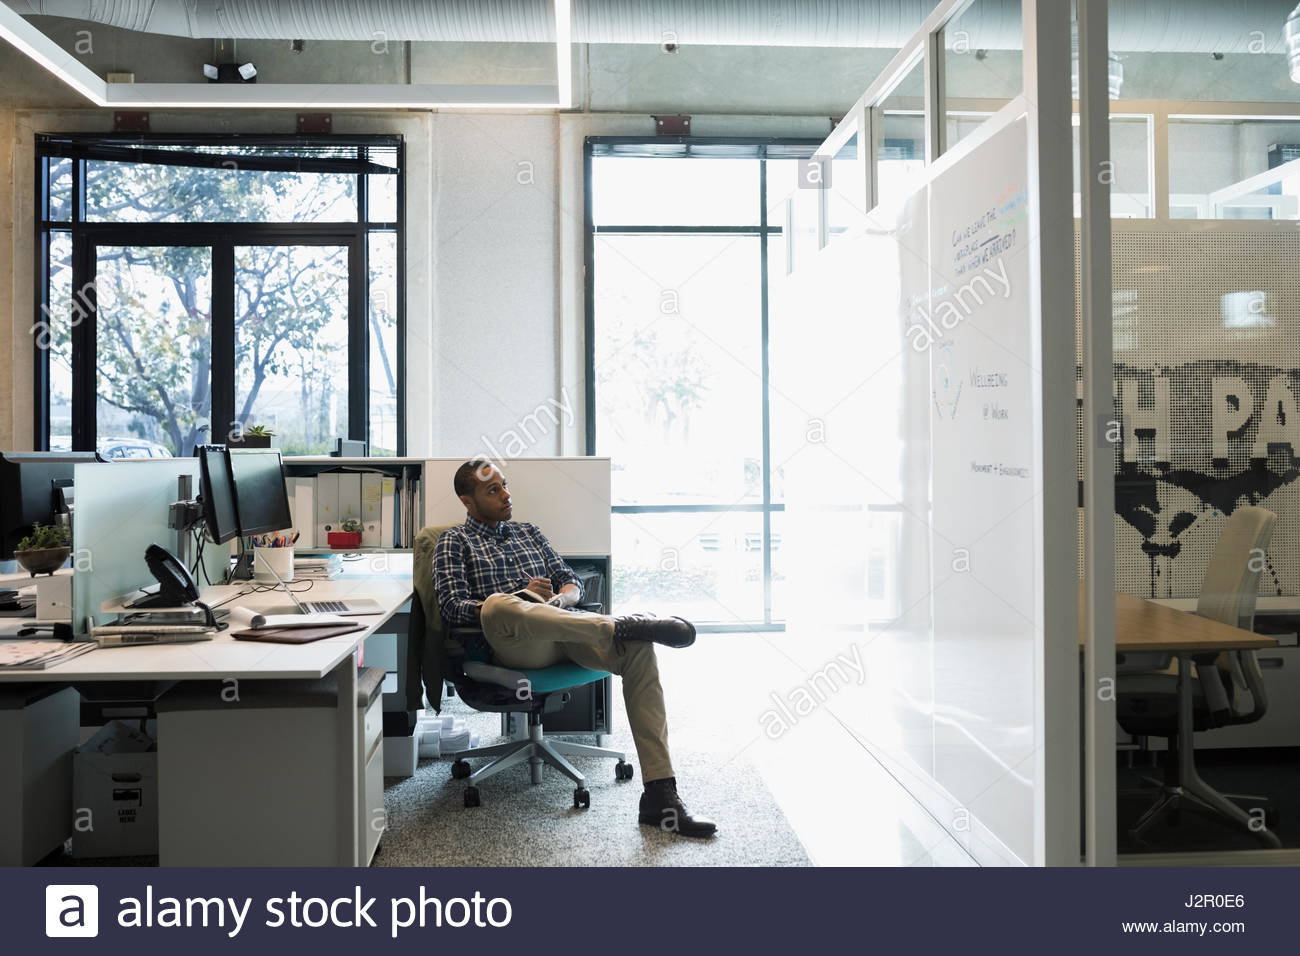 African American businessman working in office cubicle - Stock Image